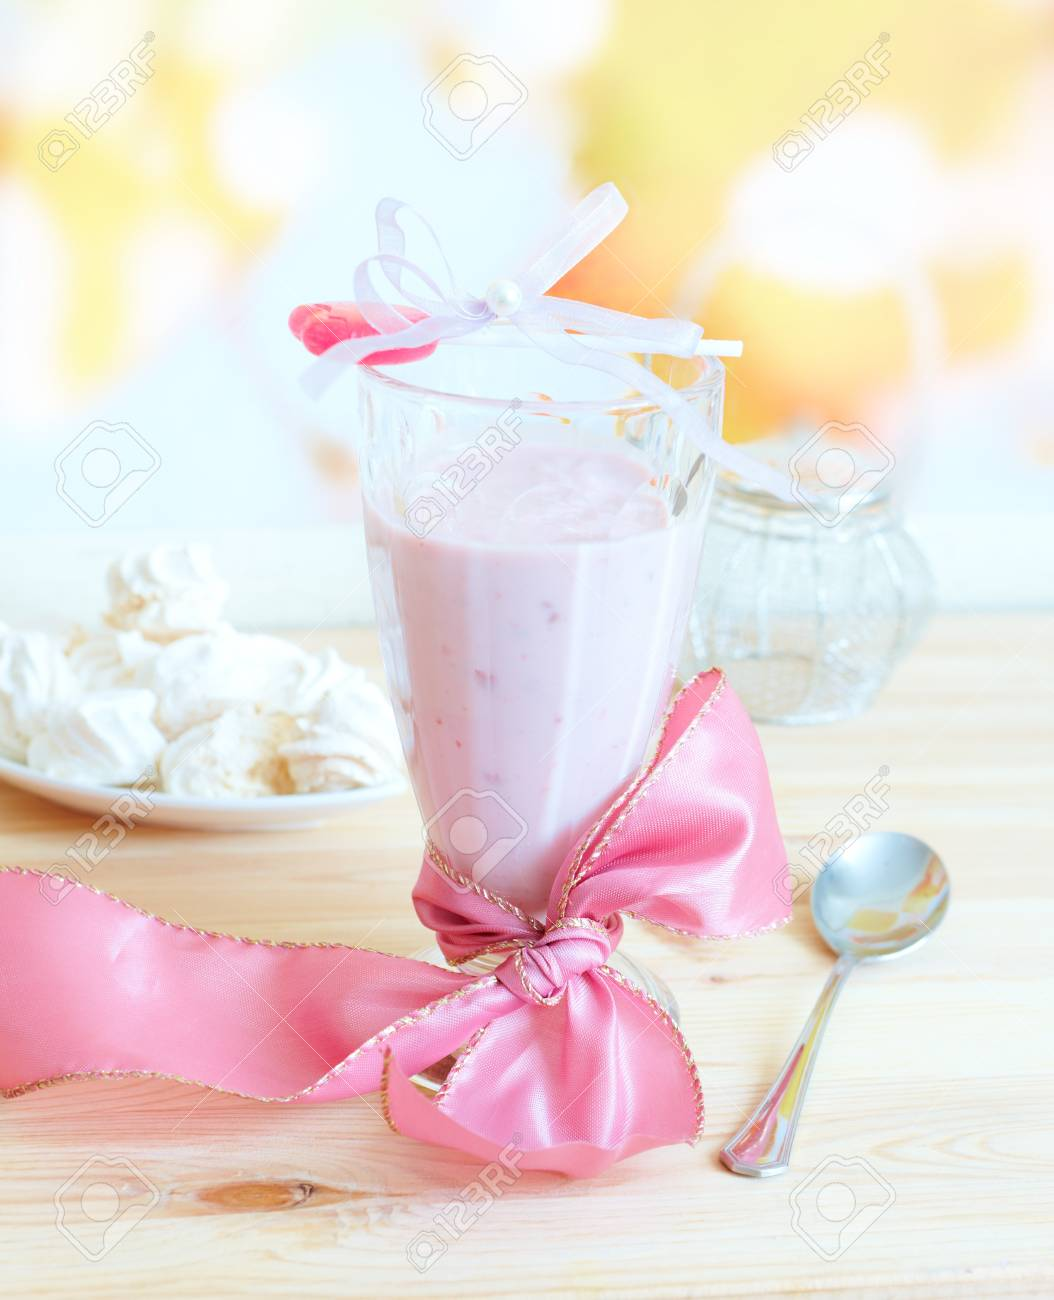 Fresh raspberry smoothie with sweet lollipop and merengues in backckground  Fruit cocktail is a light drink made of milk and raspberries, strawberies and other fruits Stock Photo - 14781175